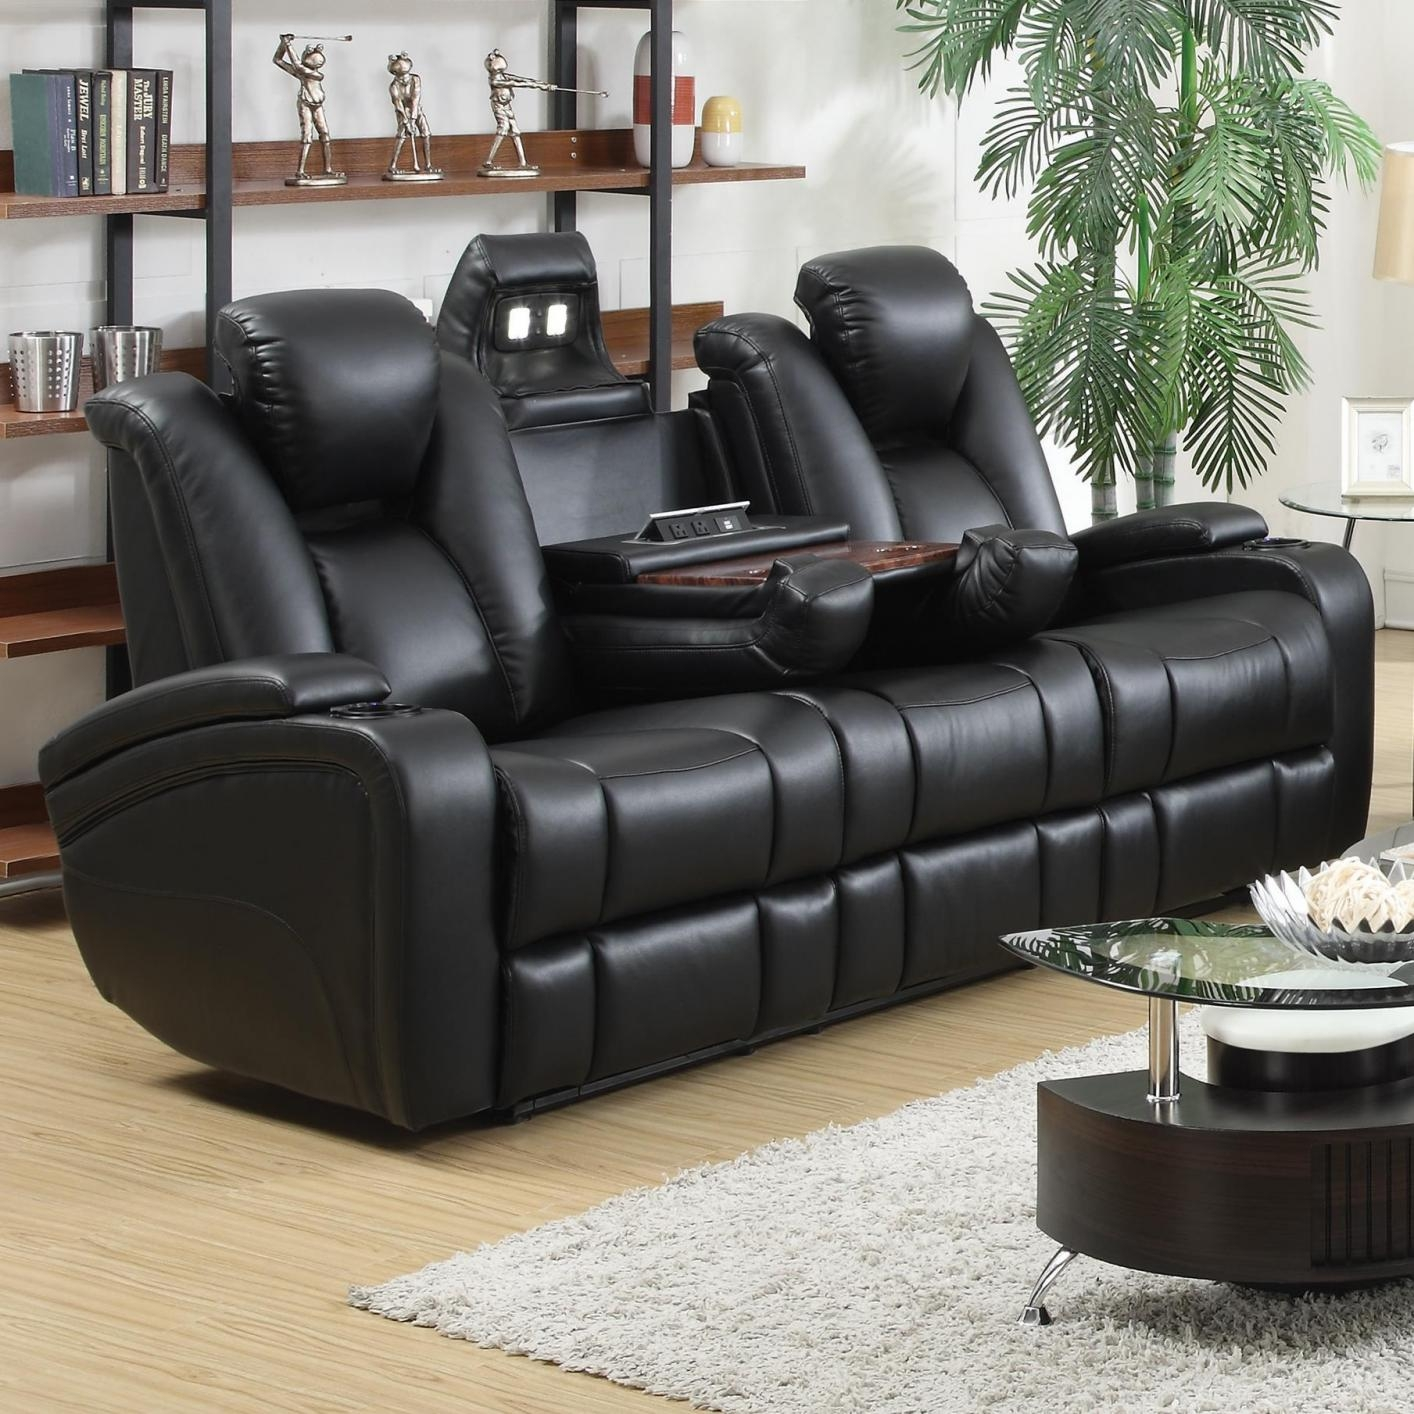 Coaster 601741p Black Leather Power Reclining Sofa Steal A Sofa For Sofa Chair Recliner (Image 5 of 15)